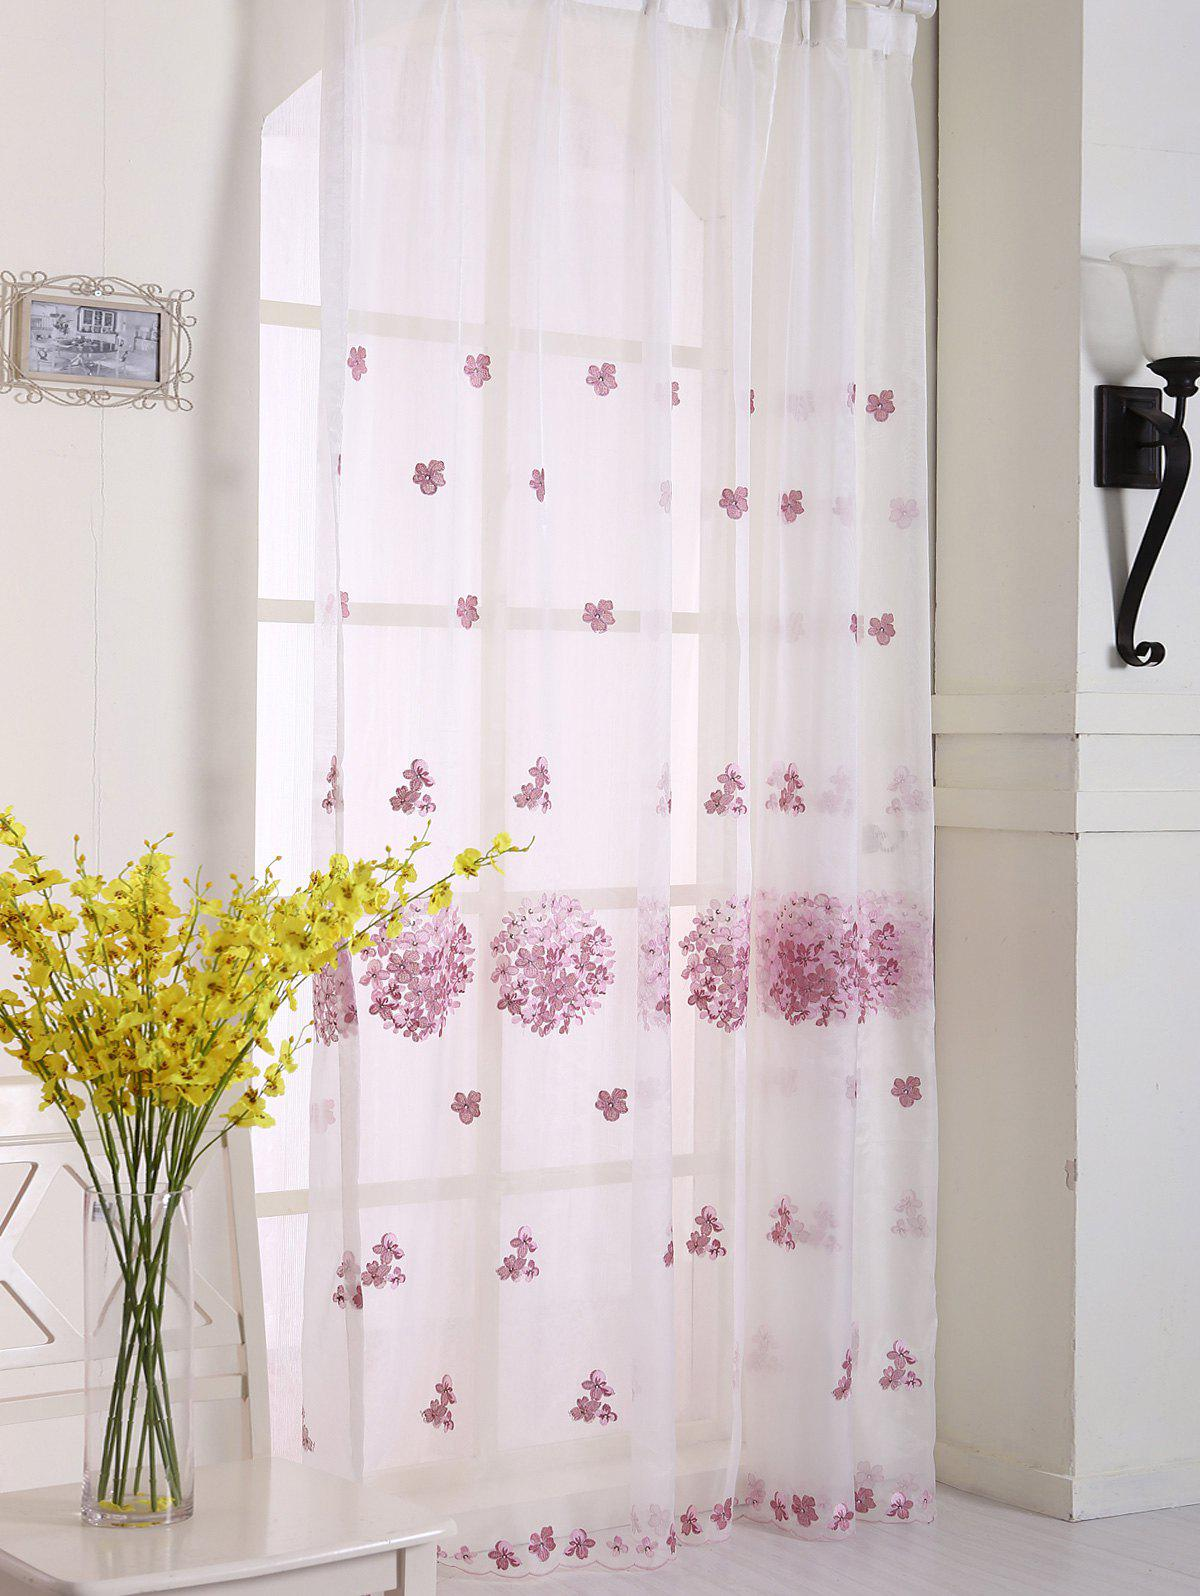 Hydrangea Print Sheer Voile Curtain Window Decor - ROSE PÂLE W42INCH*L63INCH